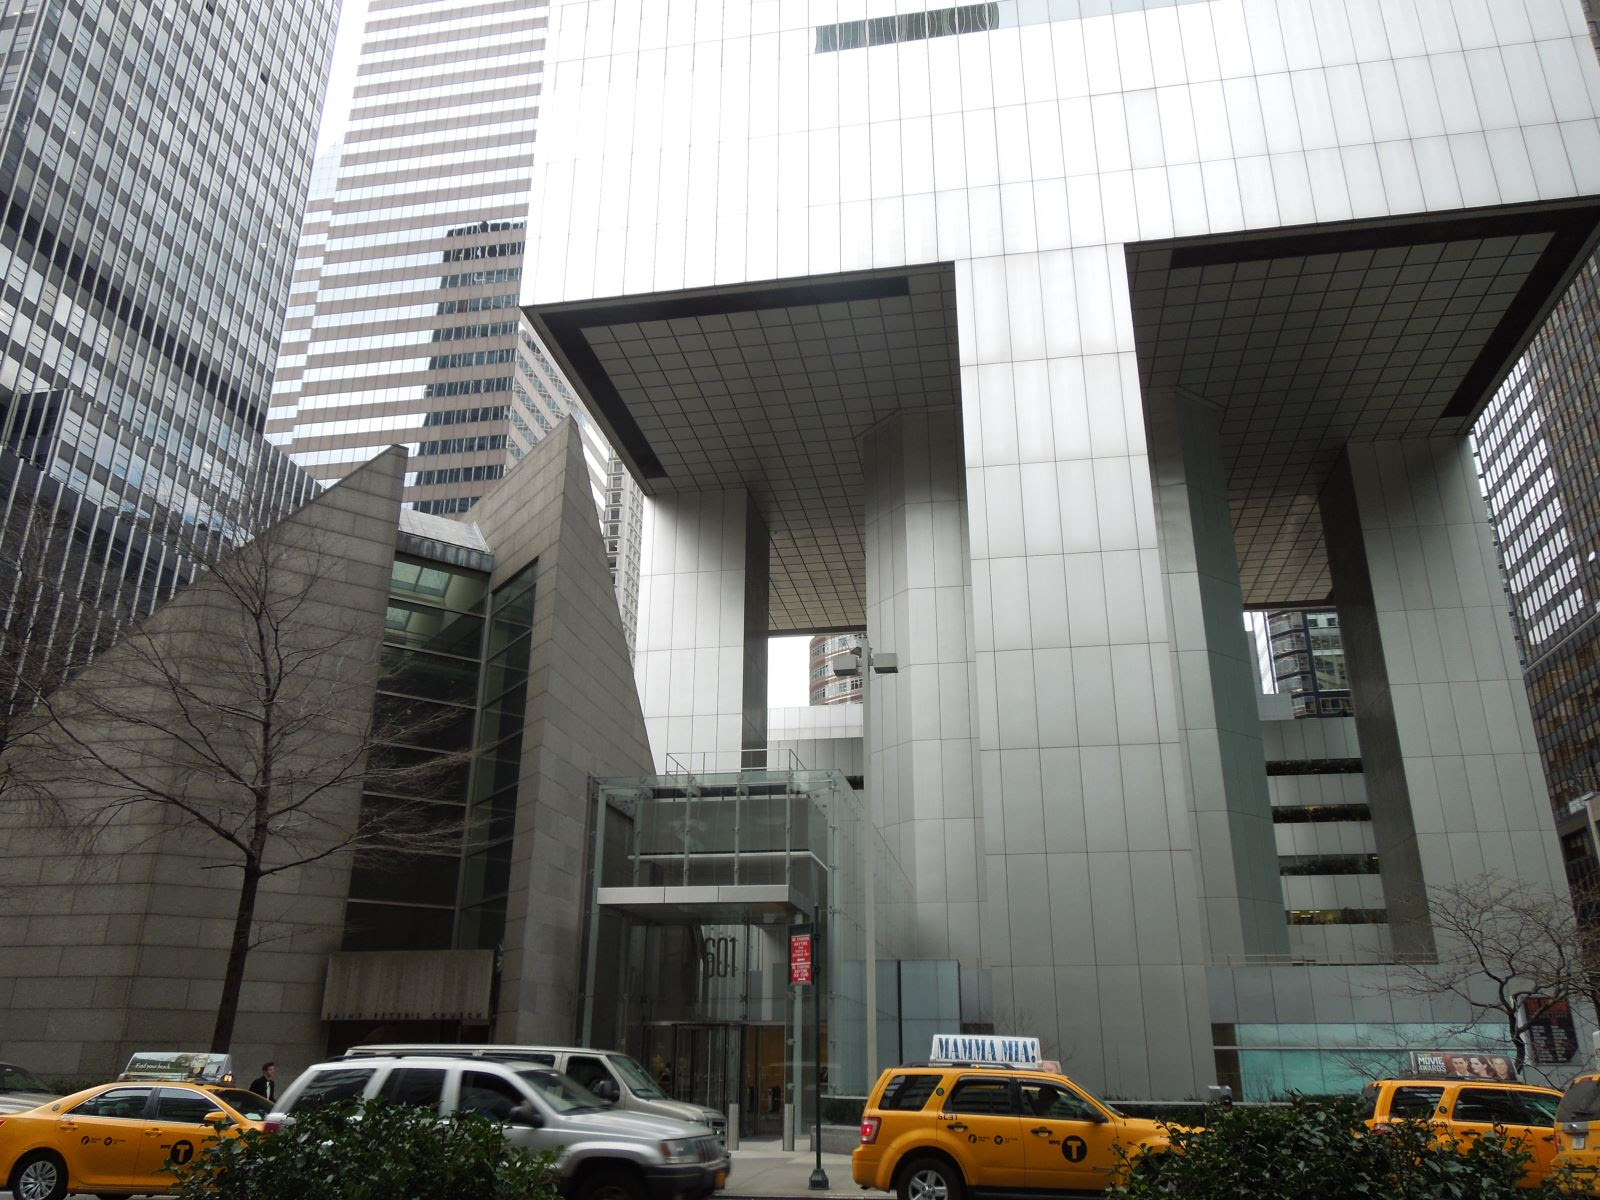 The former Citicourp Center, 601 Lexington Avenue. HDC photo